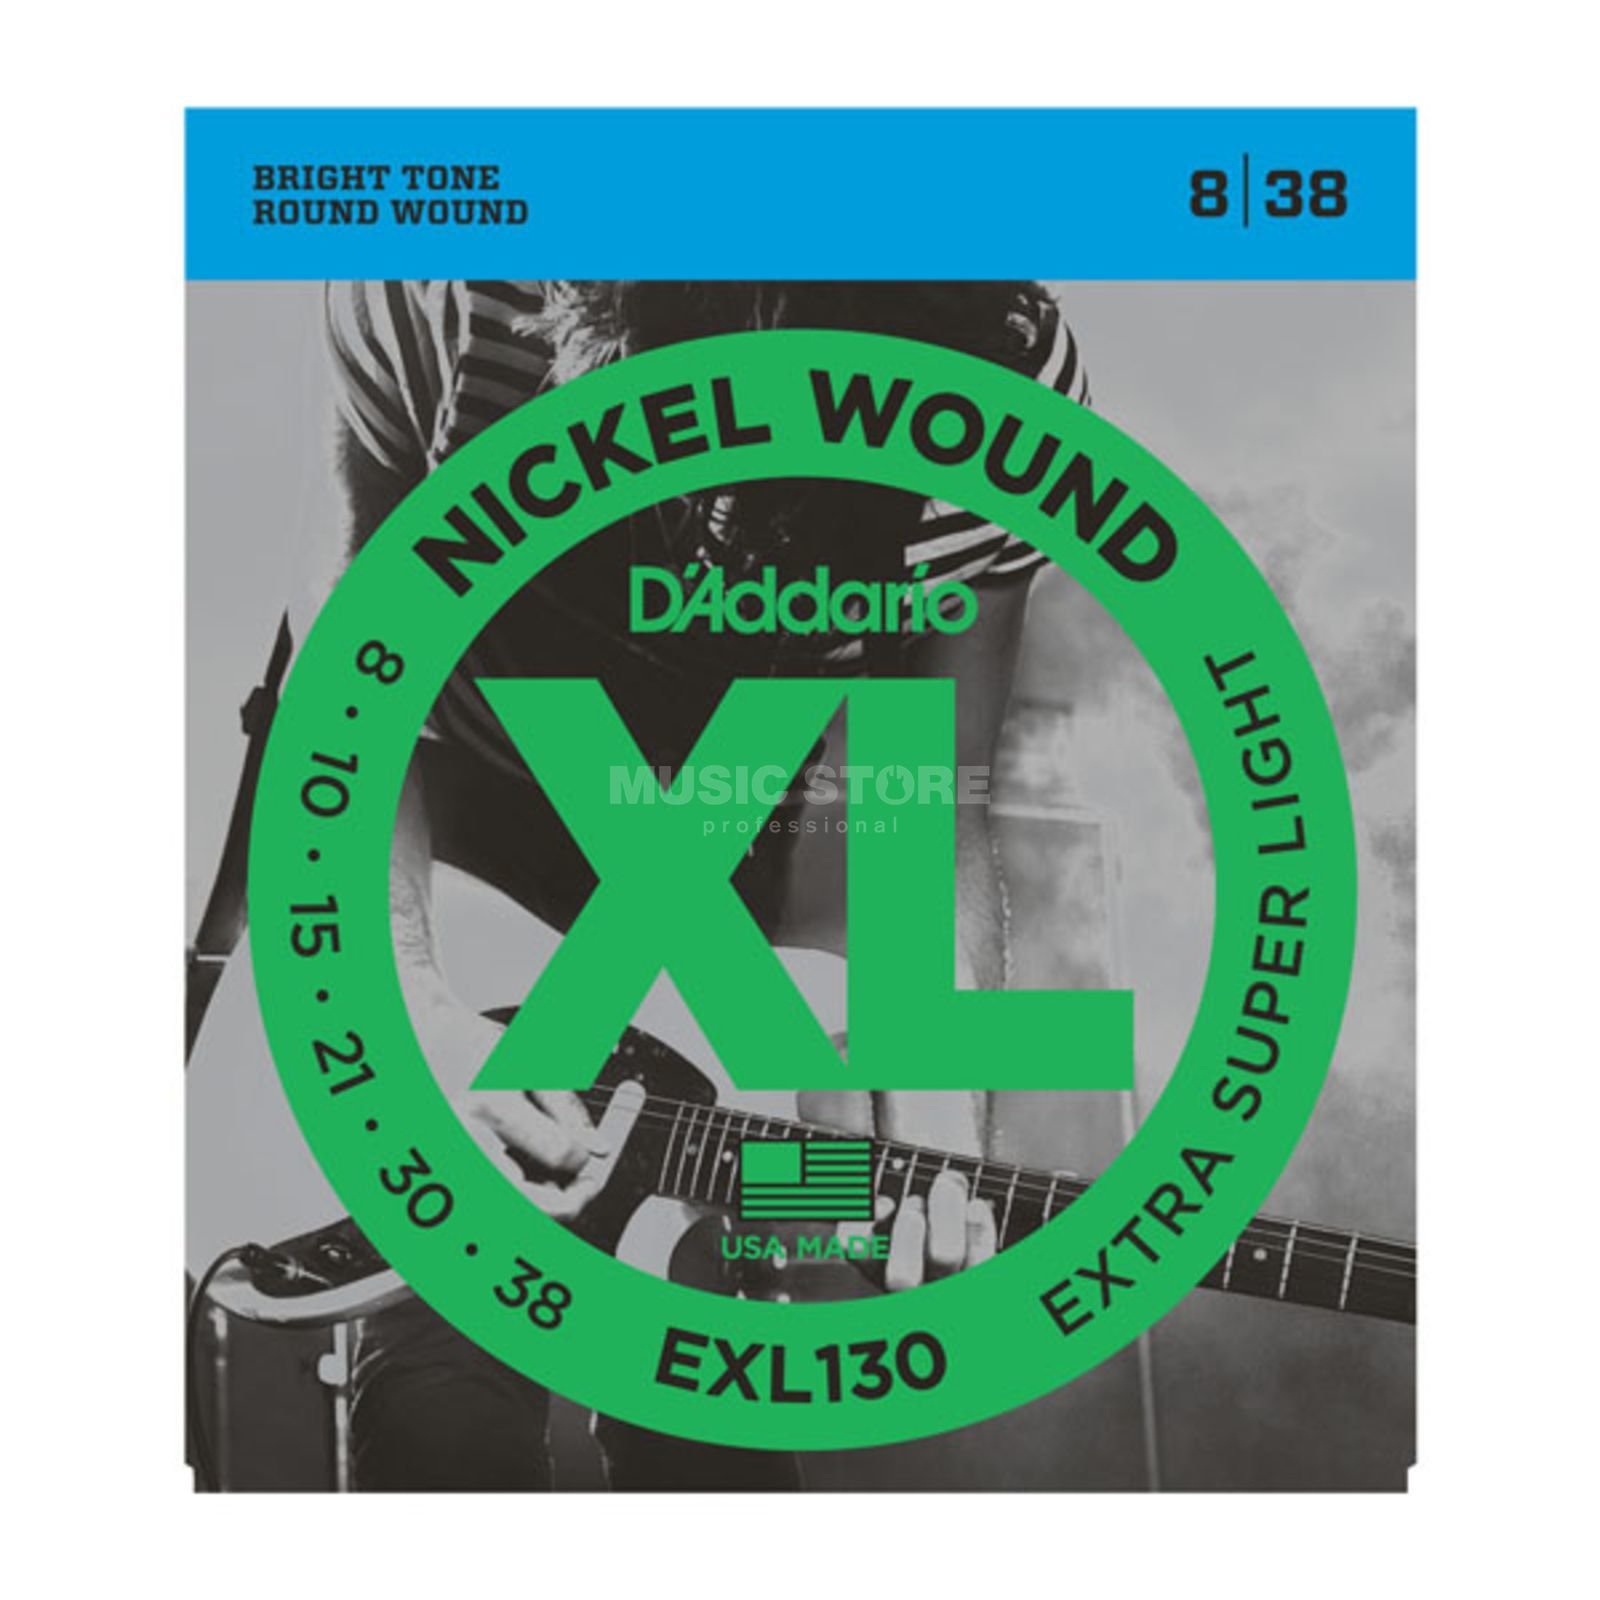 D'Addario E-Guitar Strings EXL130 08-38 Nickel Wound Produktbillede